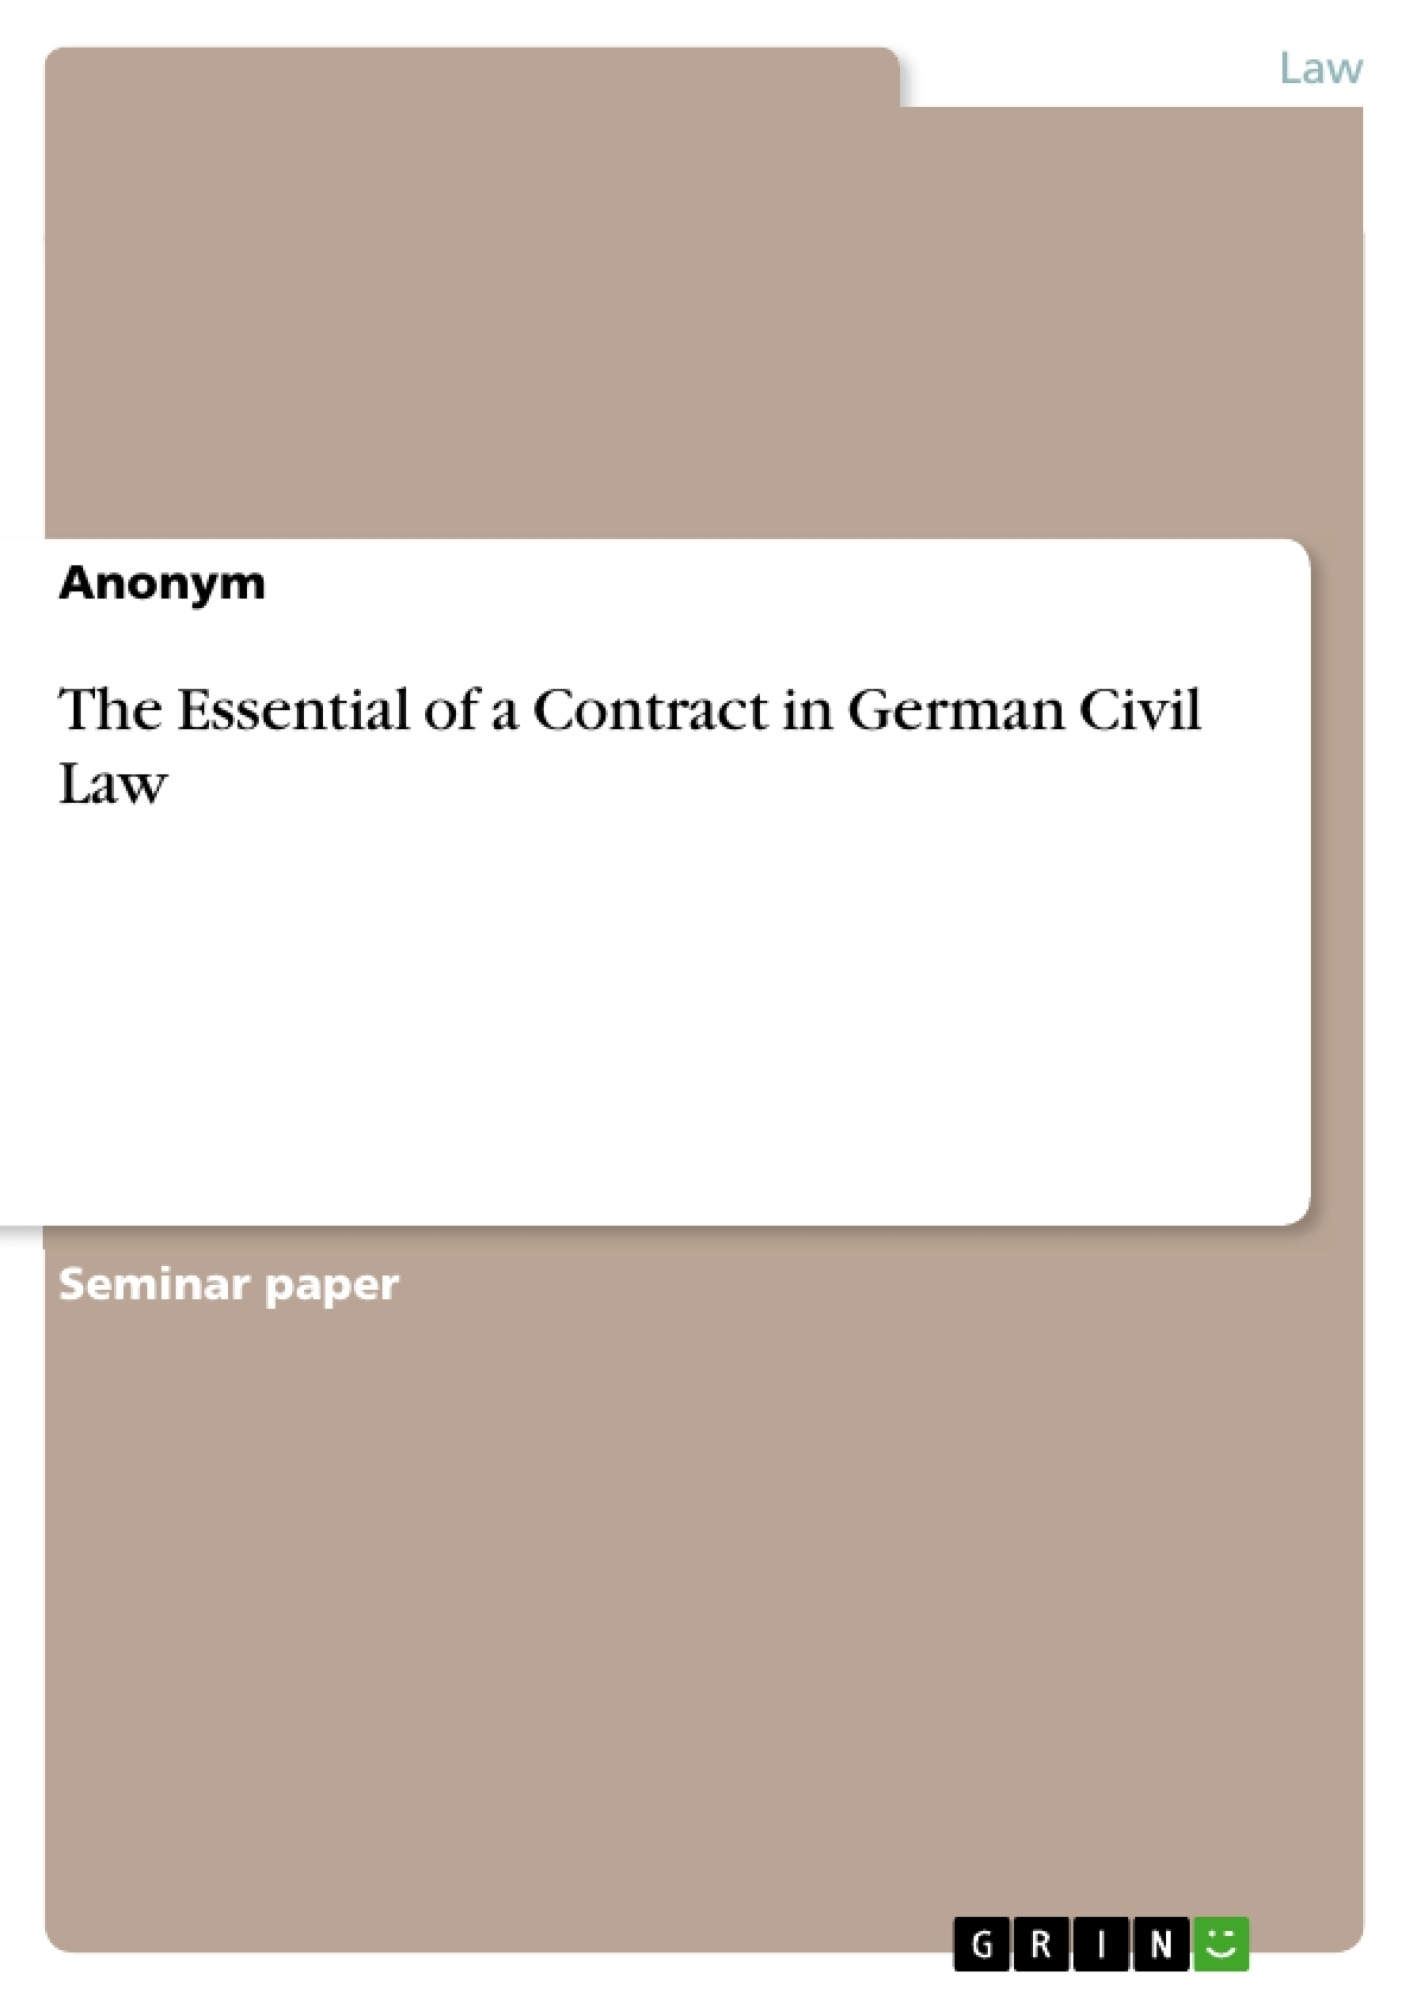 Title: The Essential of a Contract in German Civil Law